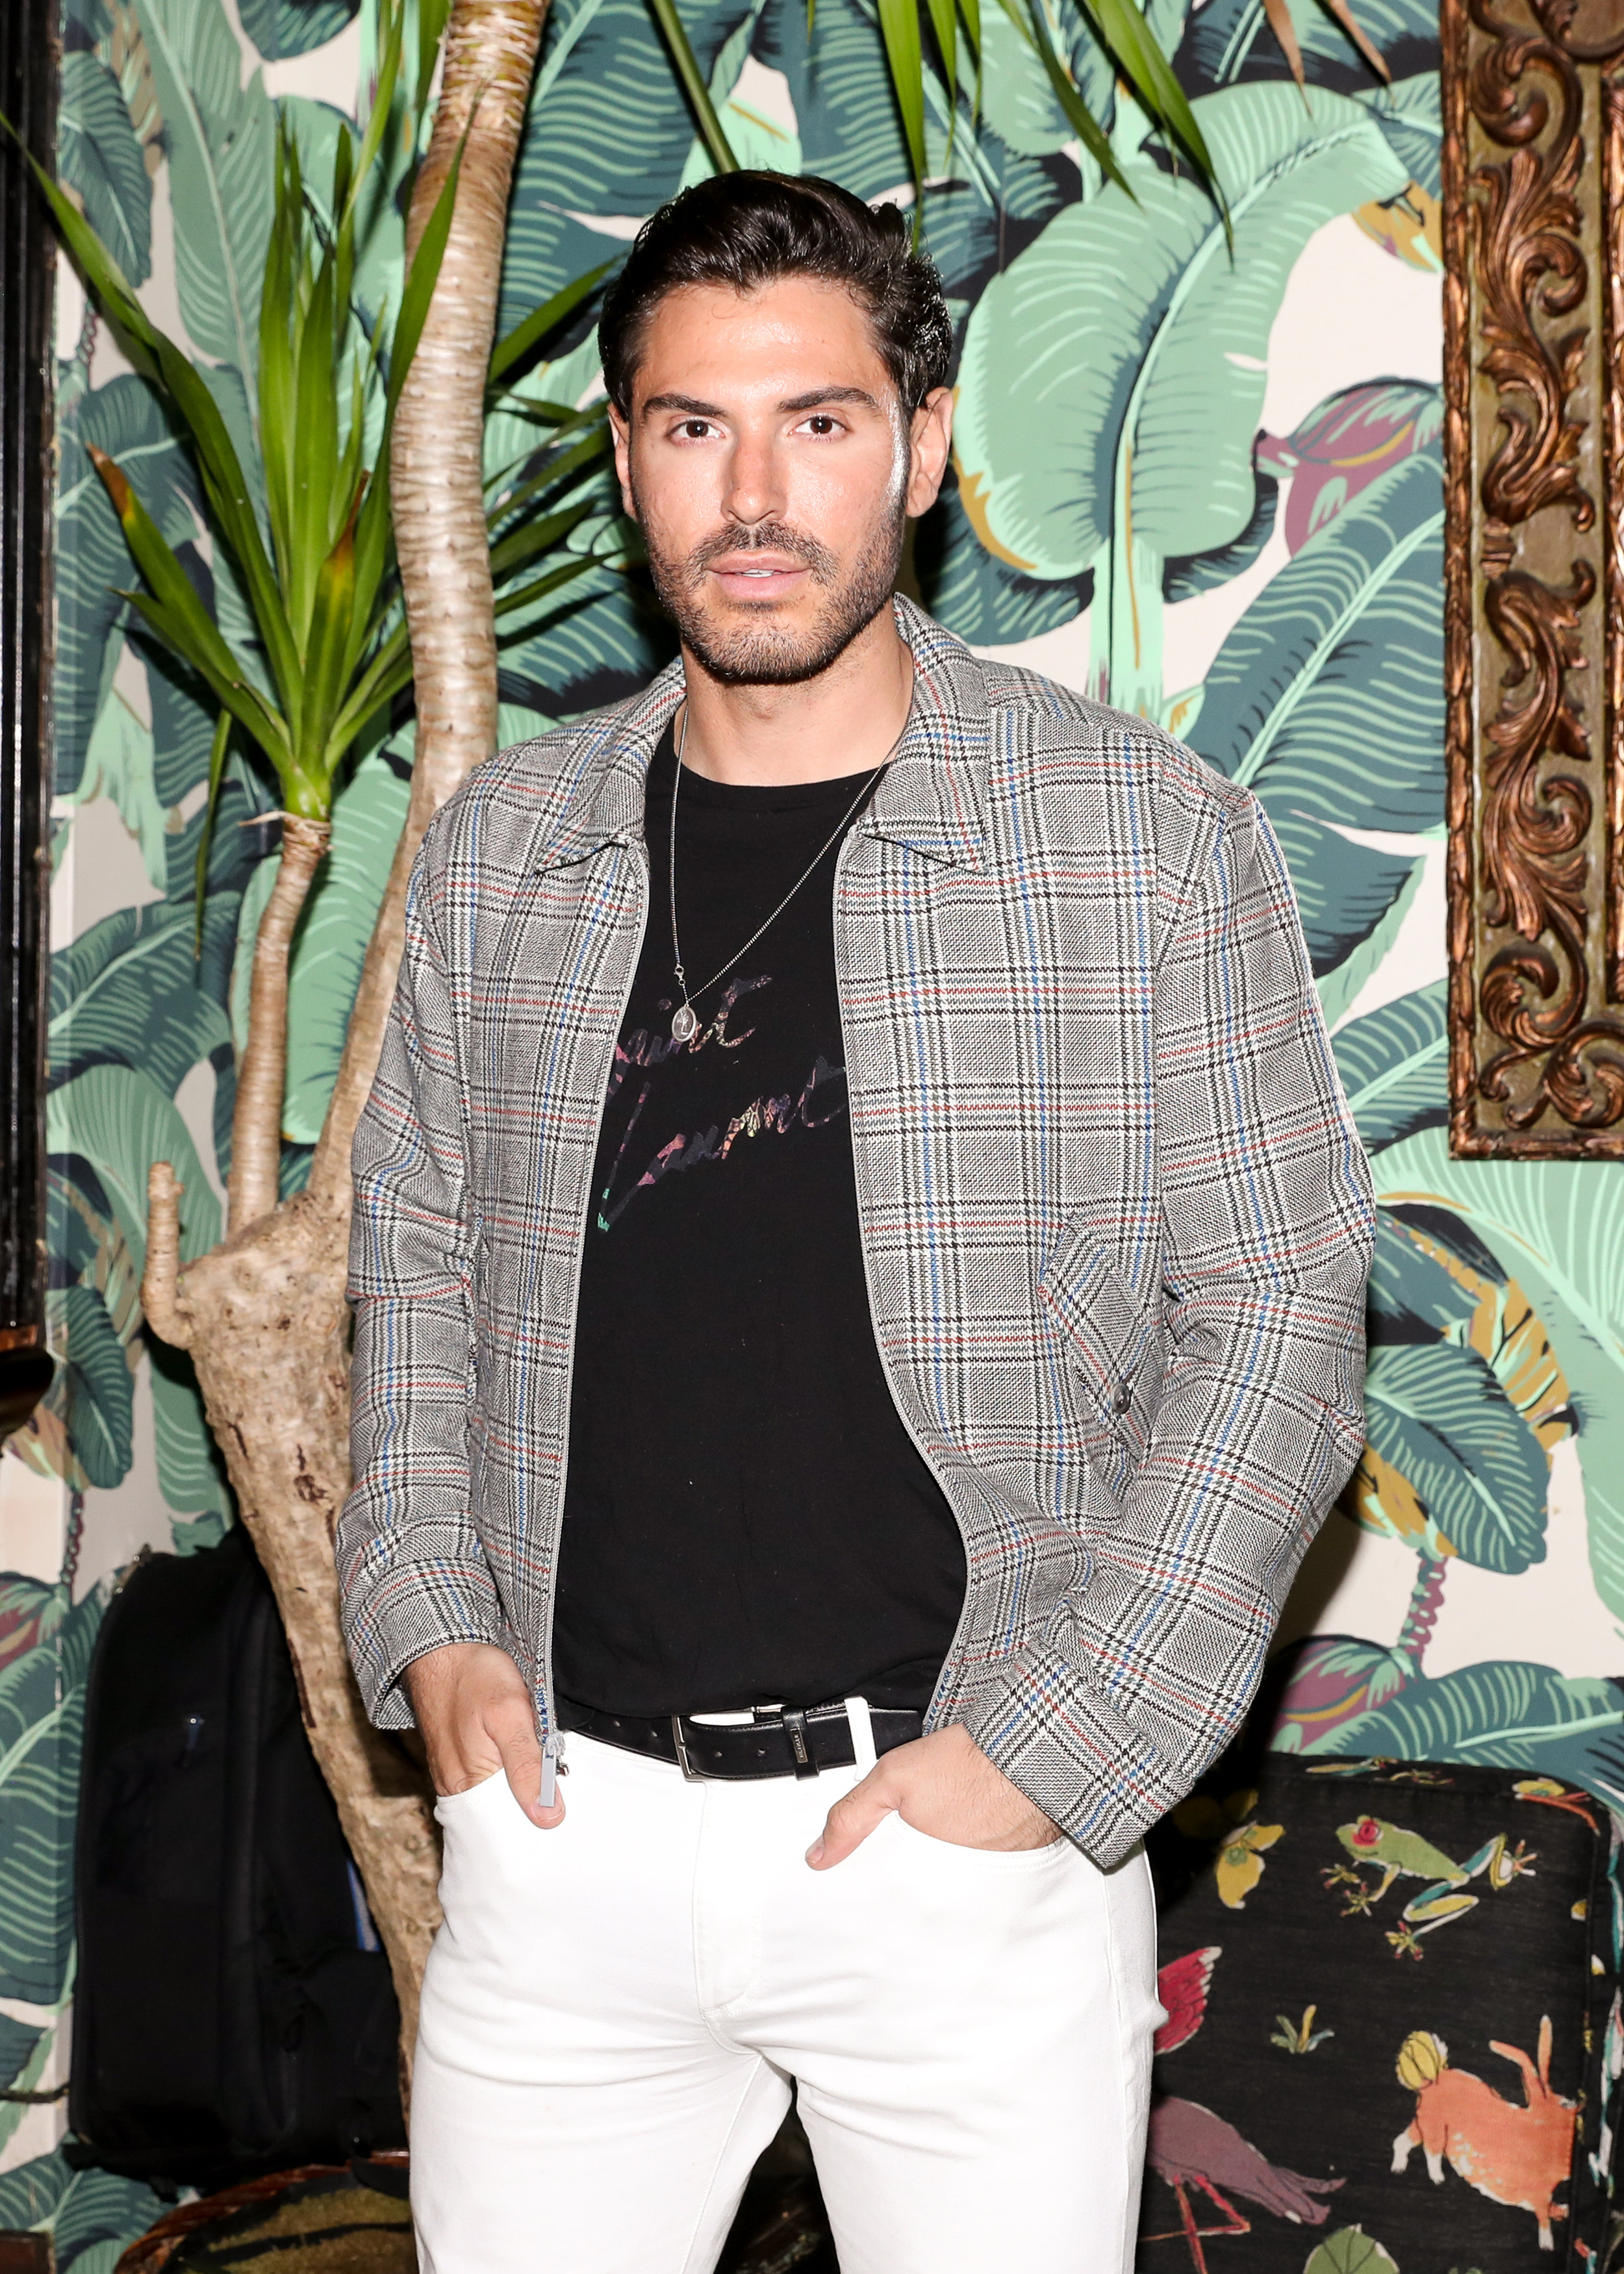 Joey Zauzig attends The Opening of The Dr. Barbara Sturm Zero Bond Boutique & Spa on Thursday, May 2, 2019. Photographed by Neil Rasmus/BFA.